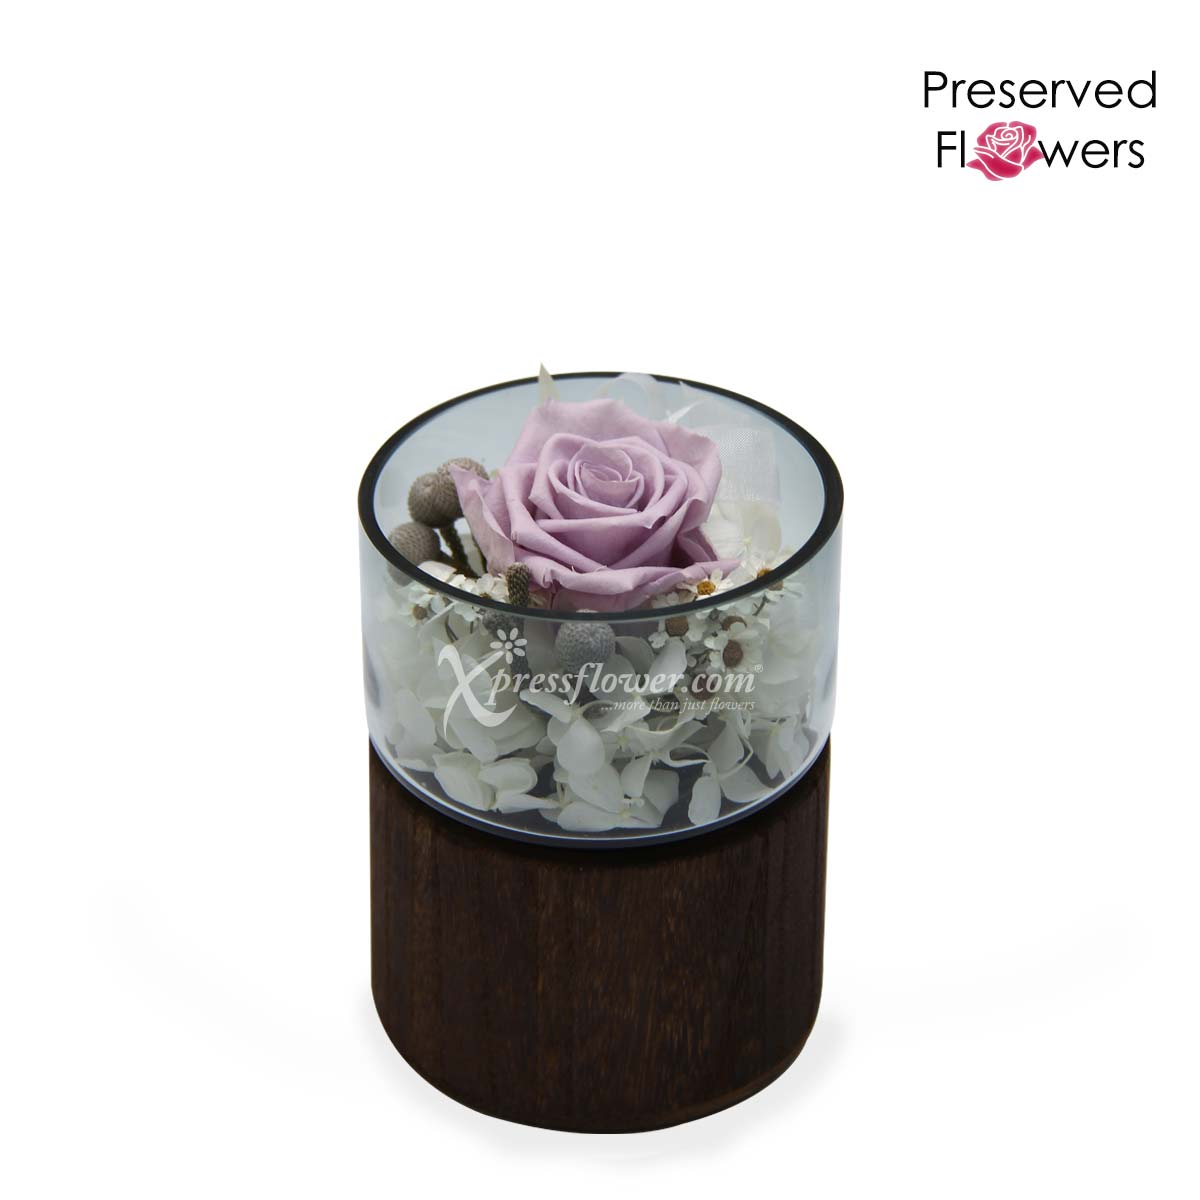 PR2113_Yam Allure (Mixed Dried & Preserved Flowers)_B